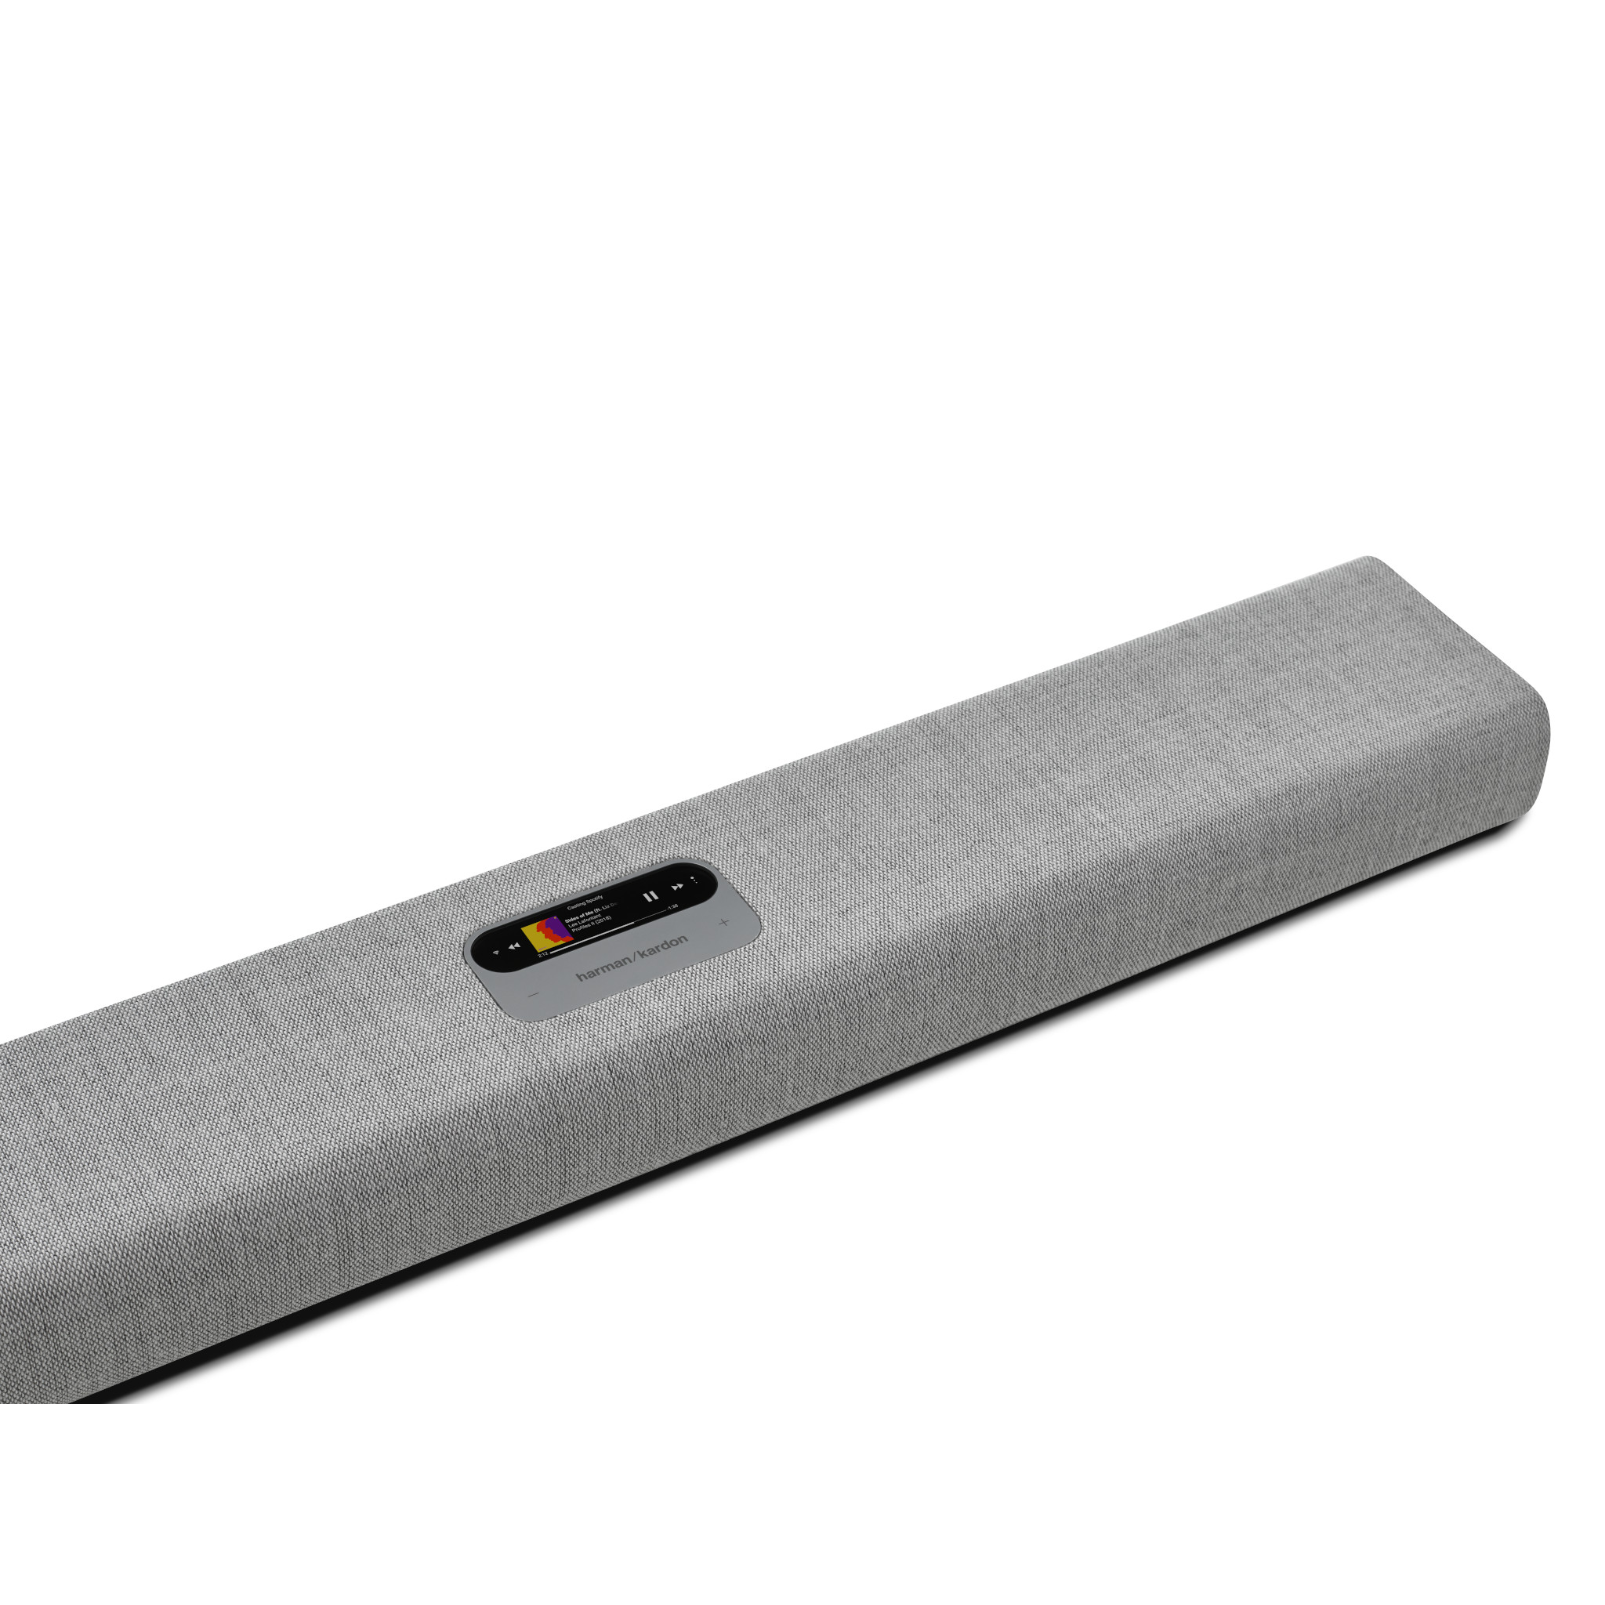 Harman Kardon Citation MultiBeam™ 700 - Grey - The smartest, compact soundbar with MultiBeam™ surround sound - Detailshot 1